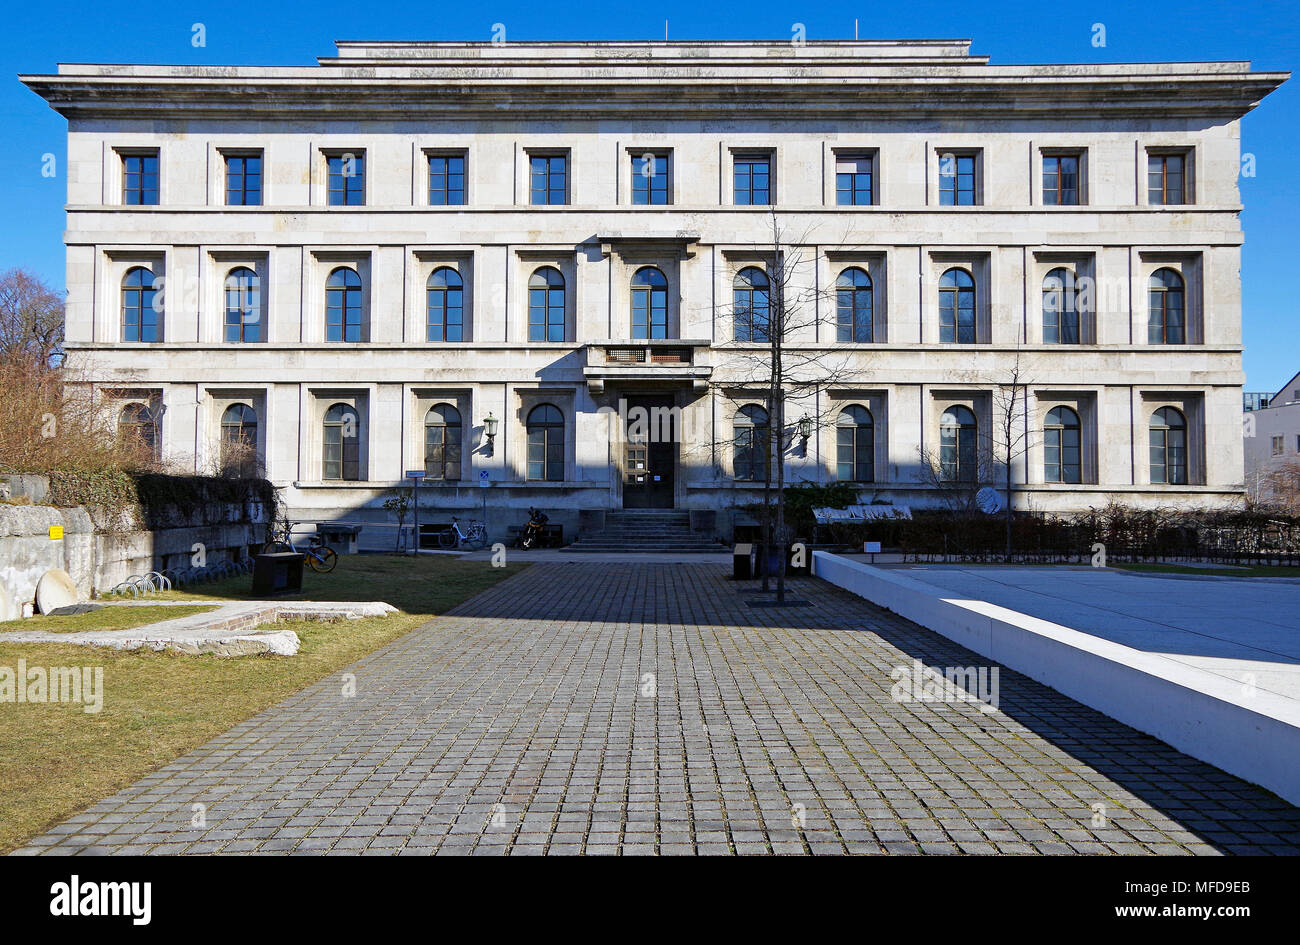 Die Fuhrerbau,  the Führer's building, built 1933-1937, is now the University of Music and Performing Arts, Munich. - Stock Image